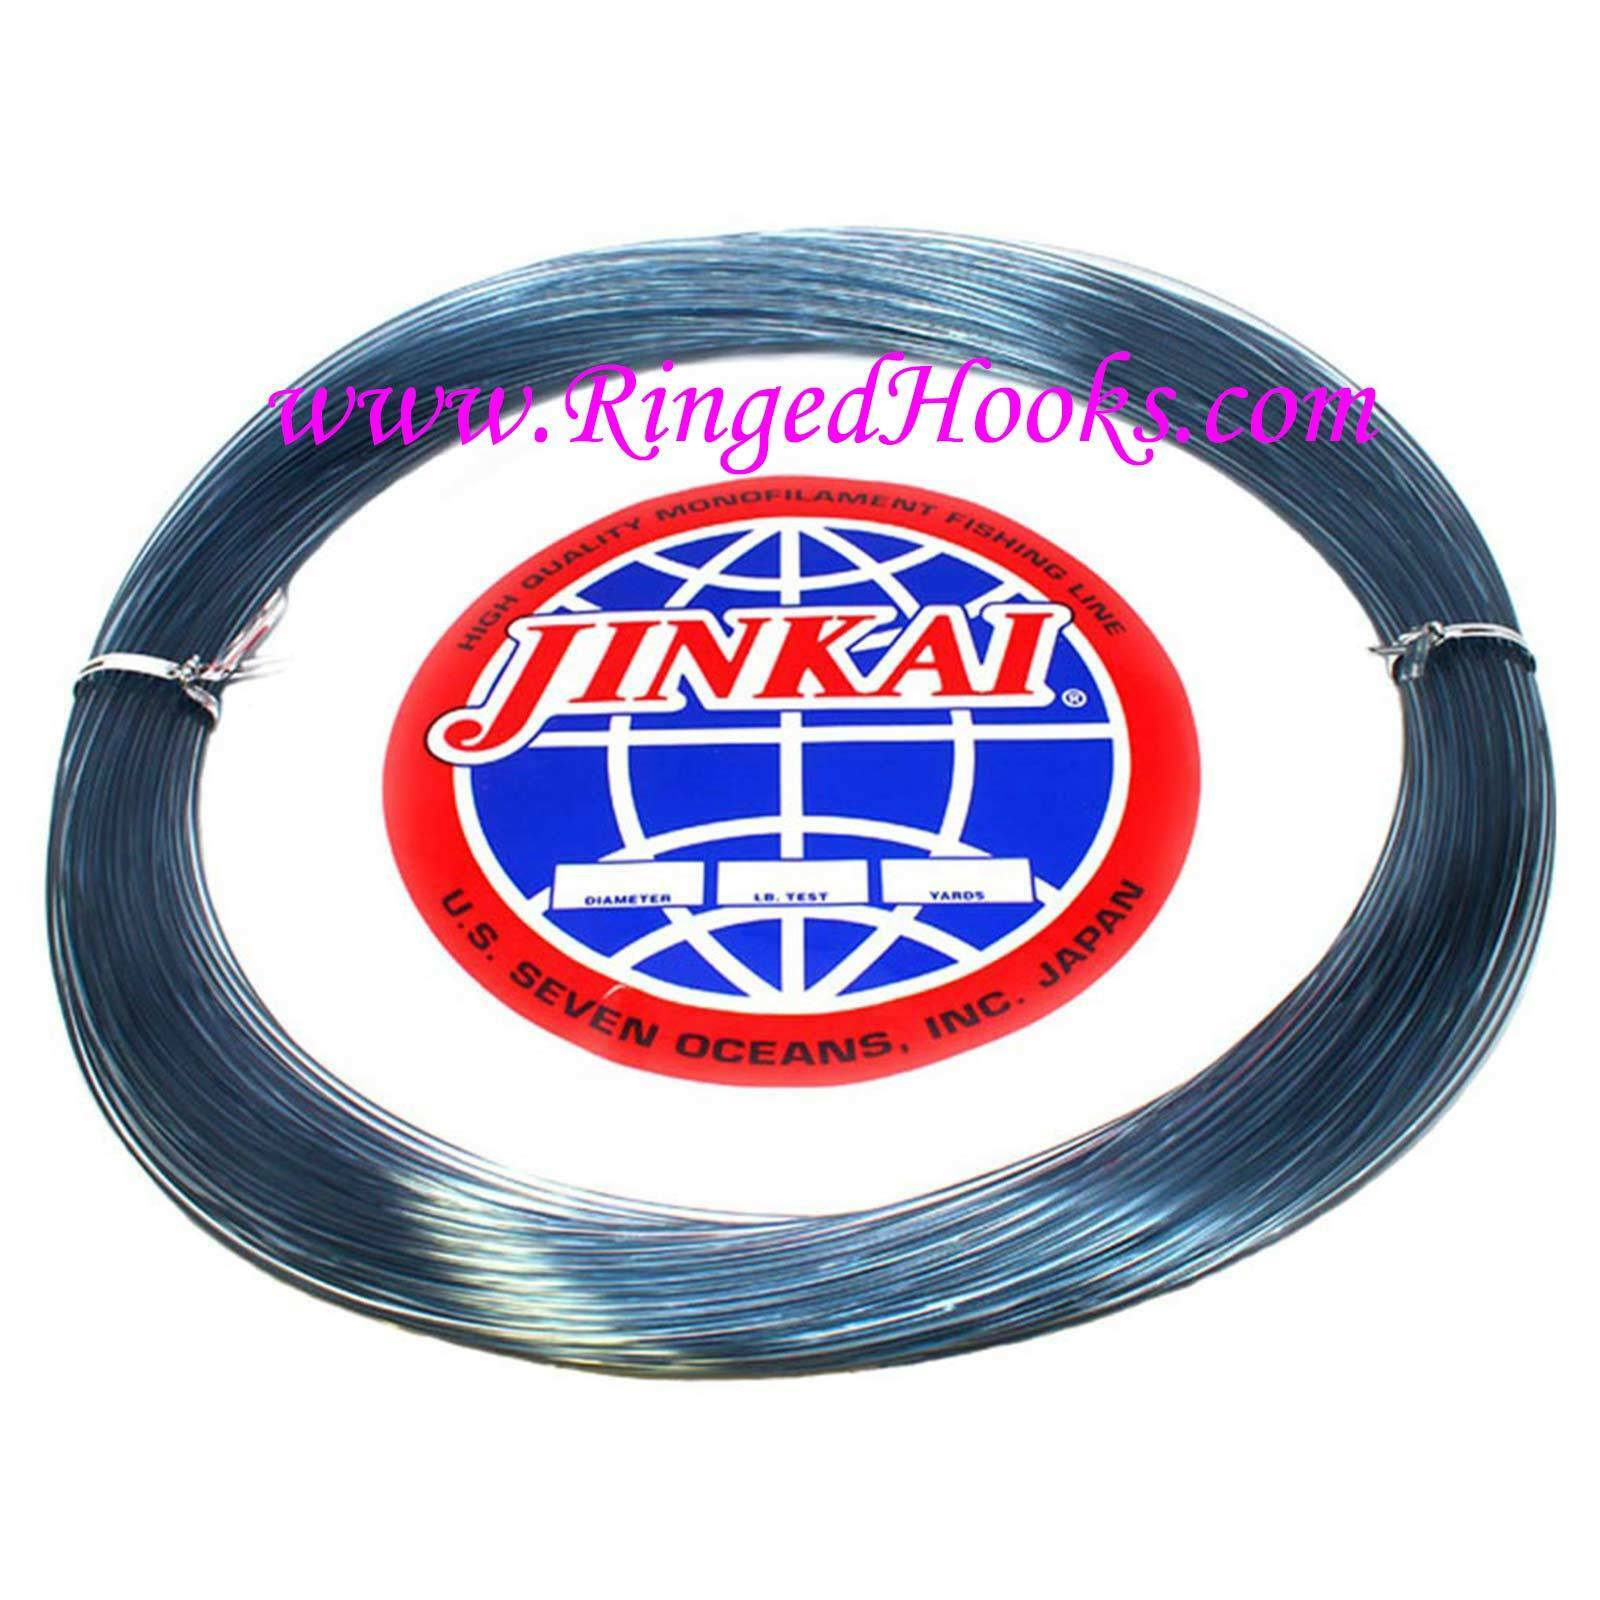 Jinkai Monofiliment leader - blueE  - 100 yd. Coil - 500 lb. Test - 2.00 mm Dia.